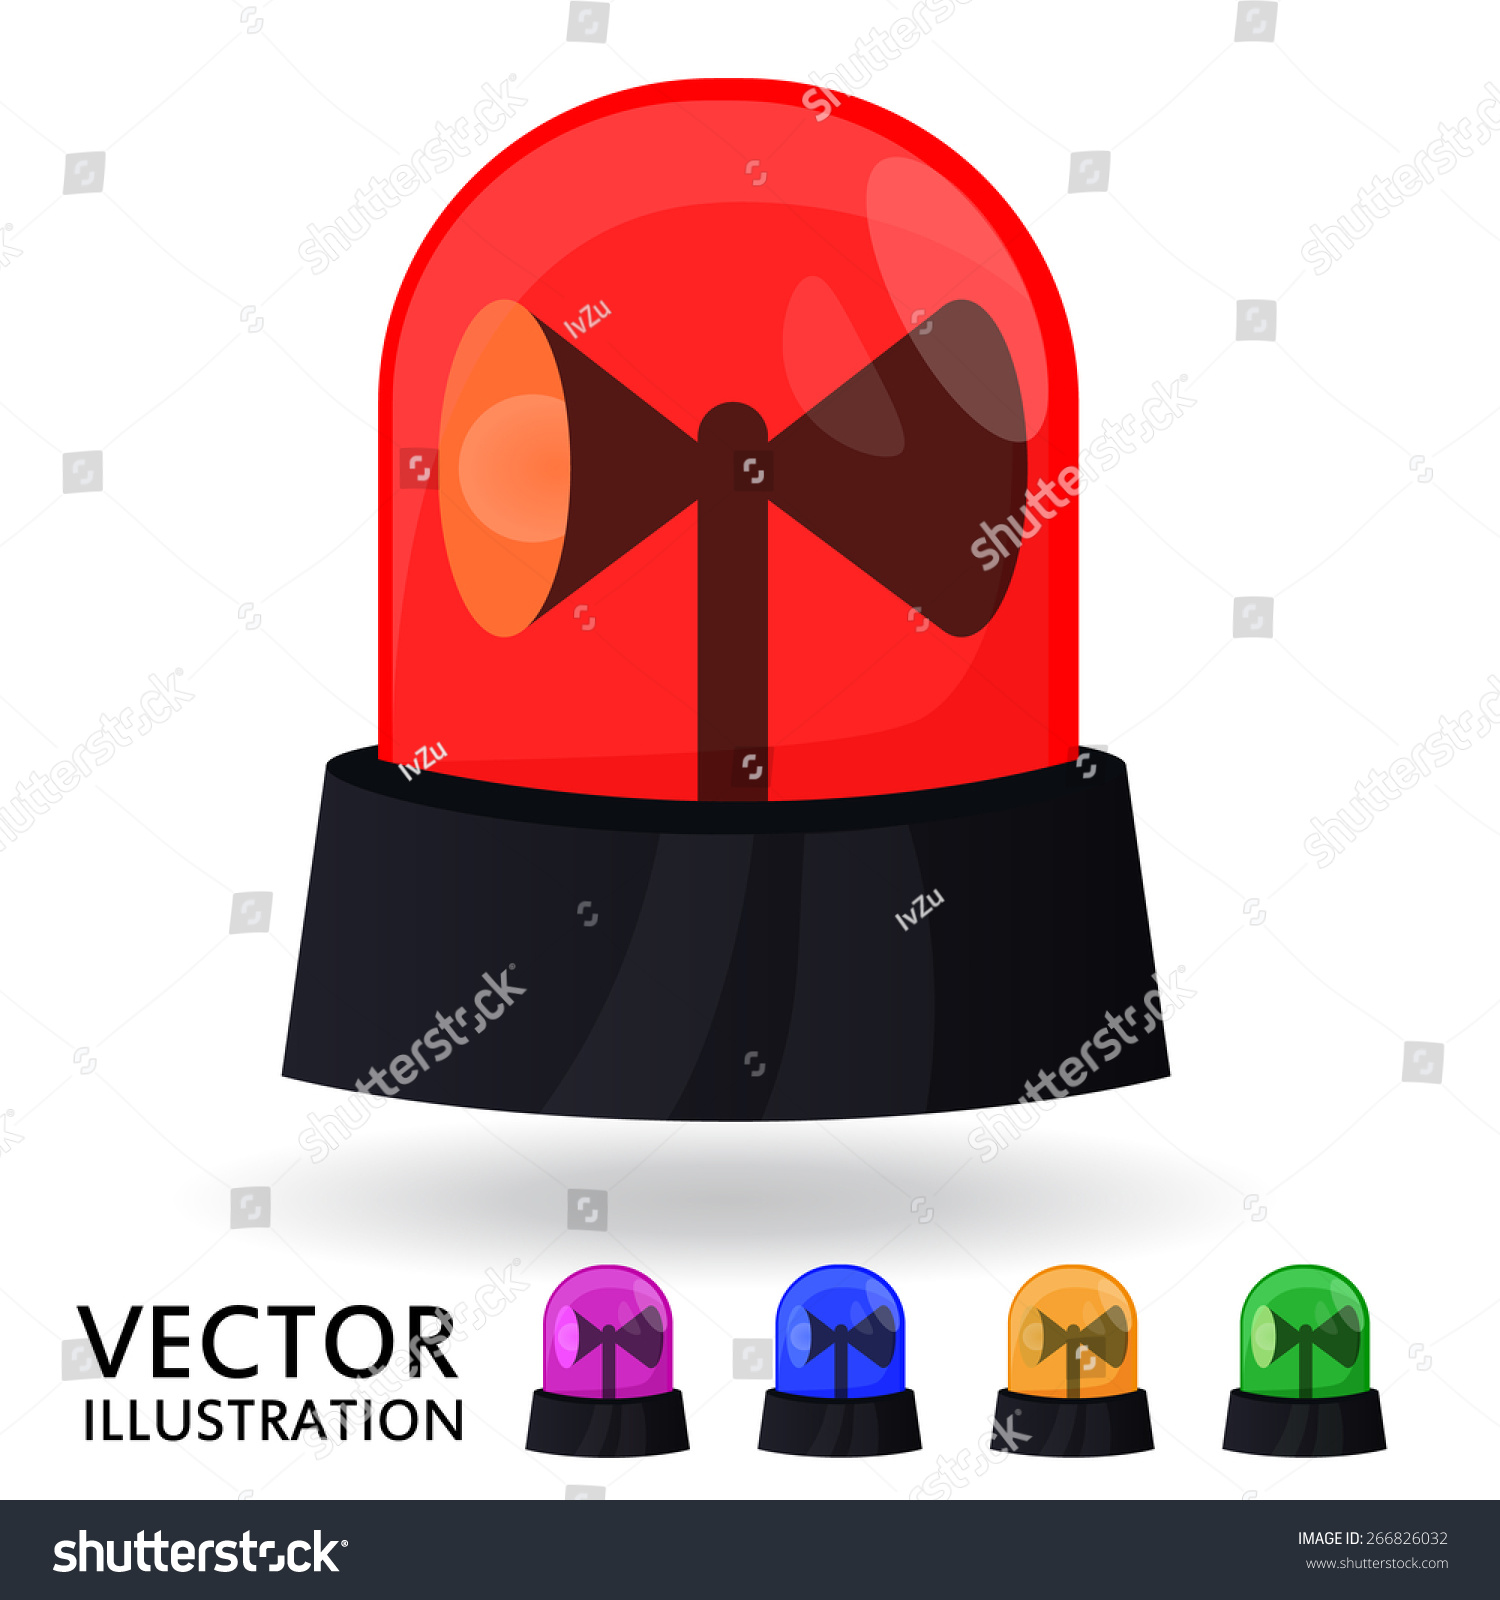 Fire Alarm Horn Strobe Wiring likewise Cartoon Alarm Siren 686Dd hZwXGYJoWorpRfRGdYjYSNCeG89HO 7CwvyQTlk furthermore Traffic Light Ux as well James Tissot Charles Baudelaire And additionally After Sleeping For Solid 6 Hours Last. on fire alarm strobe clip art